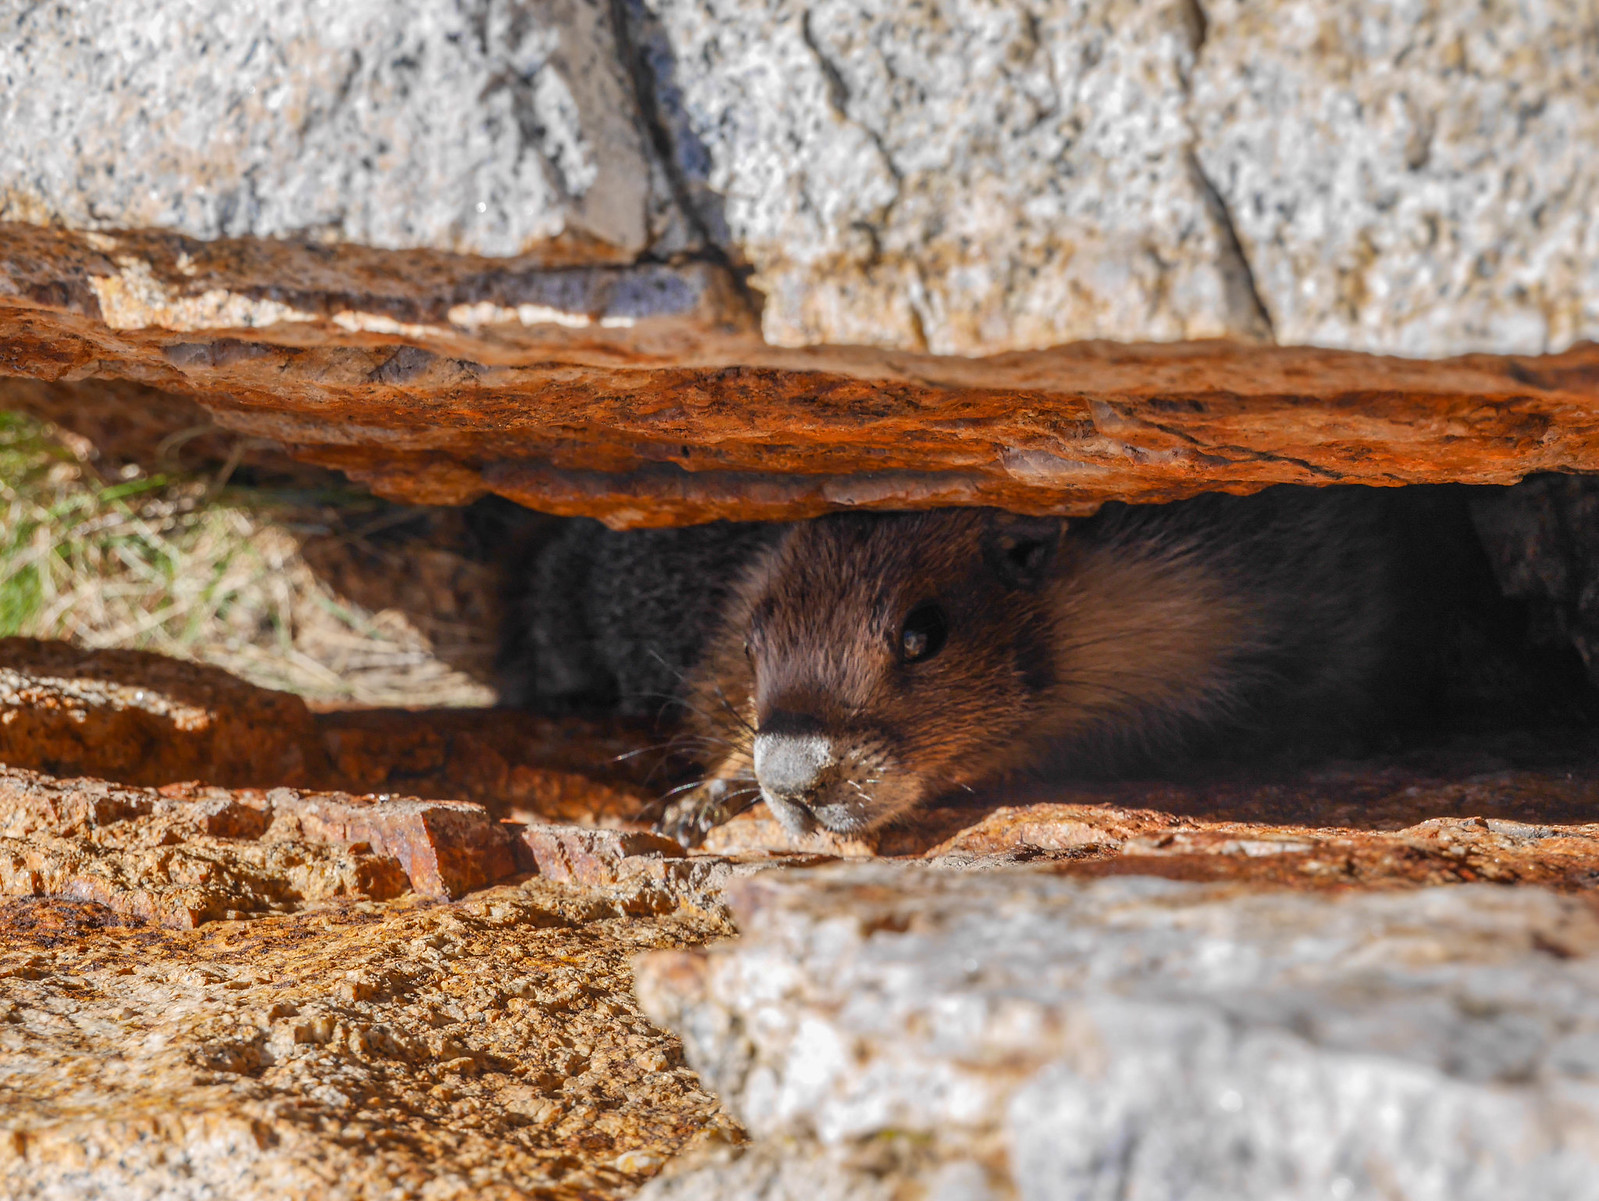 Marmot buddy squished in a rock crack